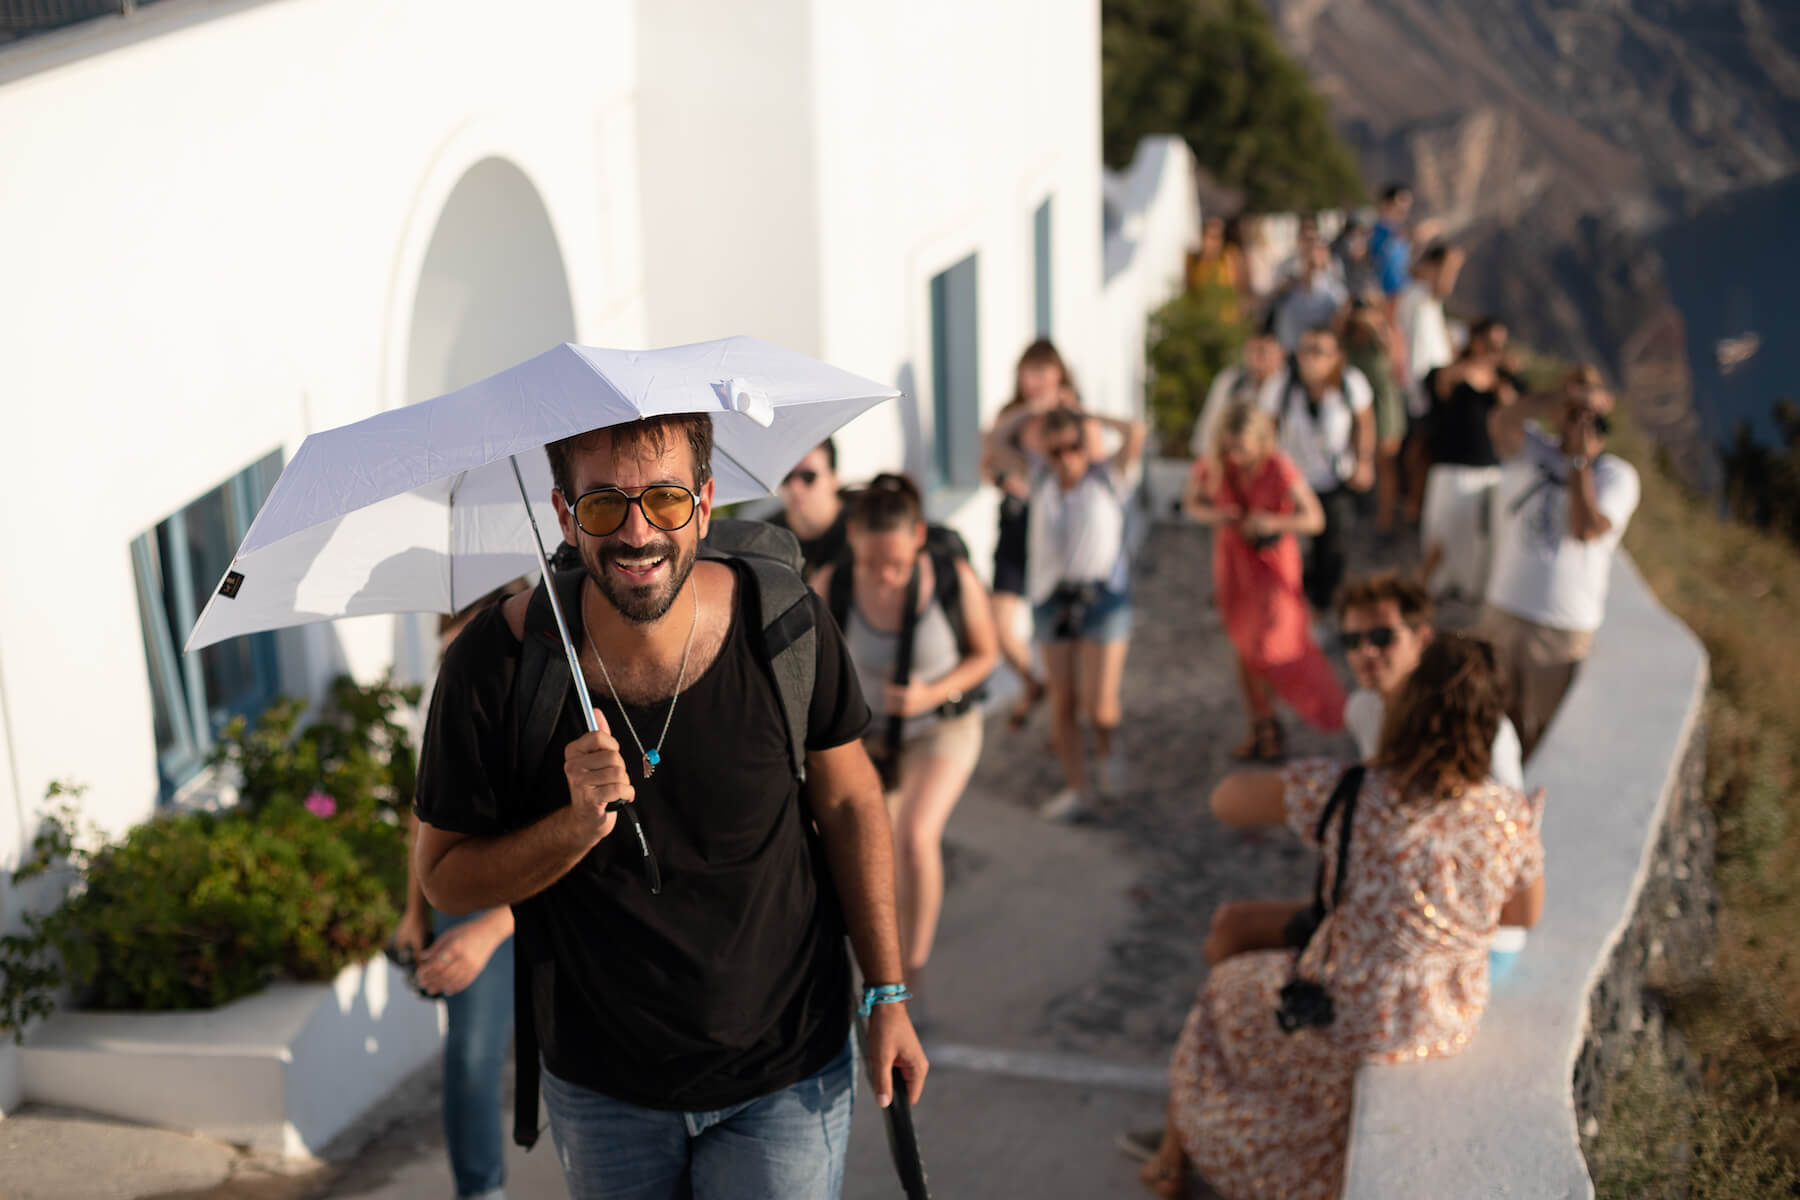 People hiking on a trail in Santorini, Greece